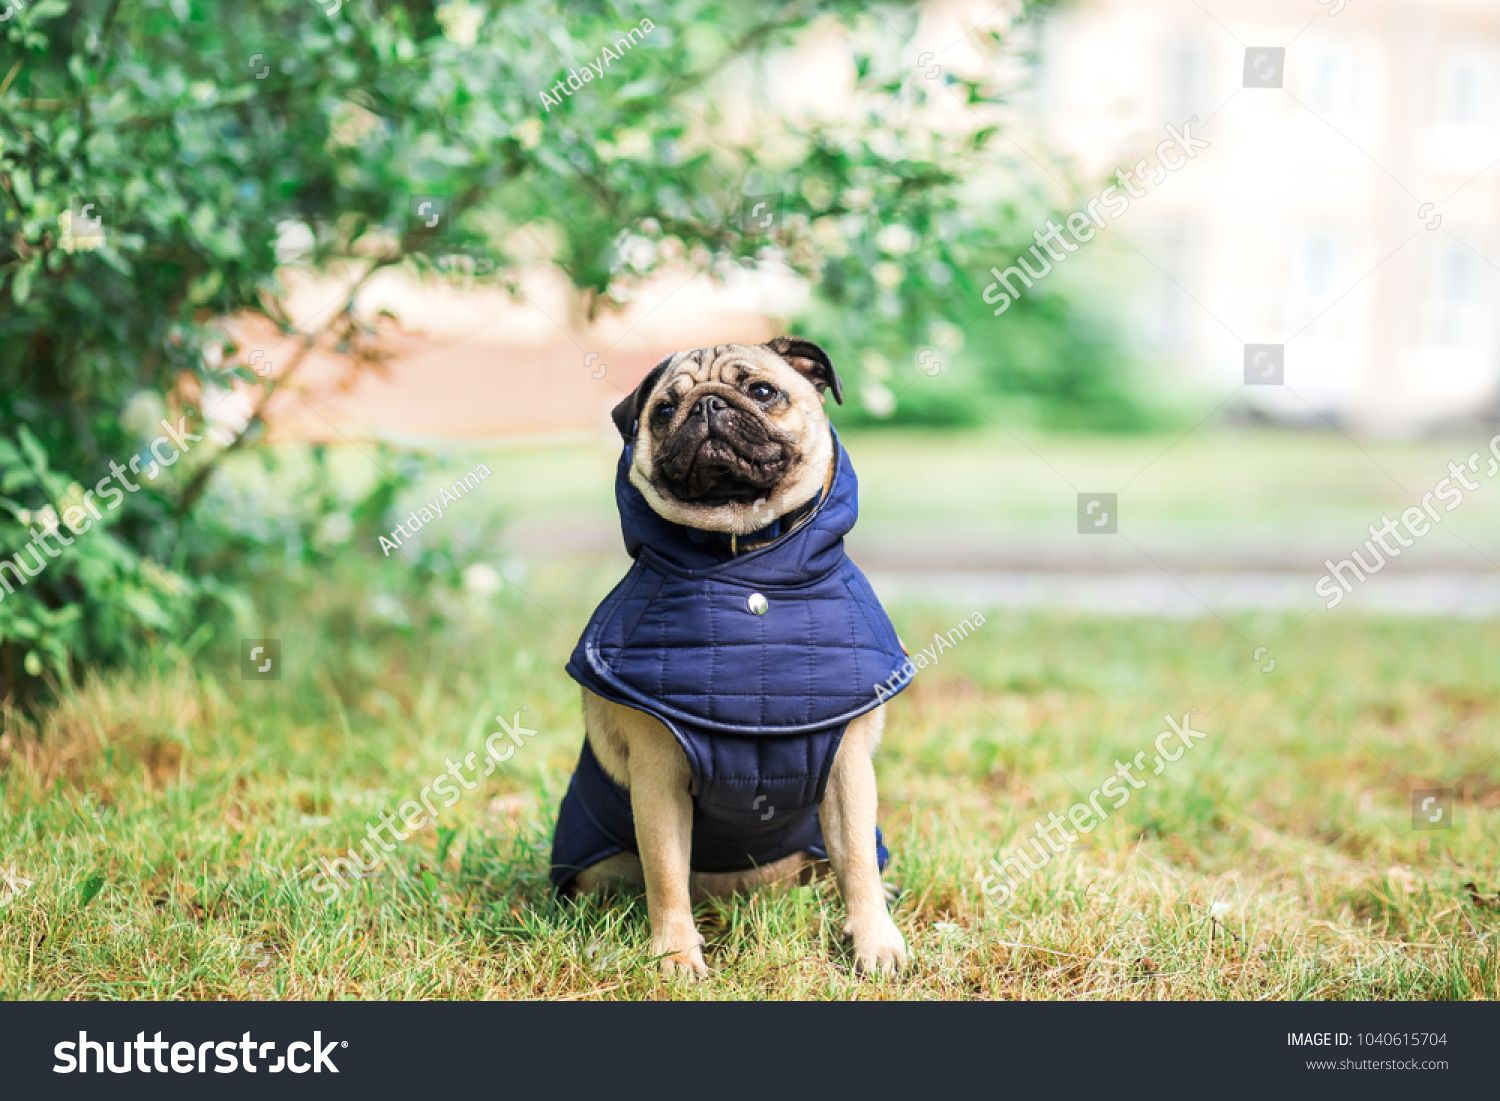 Pug Dog In Clothes For A Walk On Nature Backgroundclothes Dog Pug